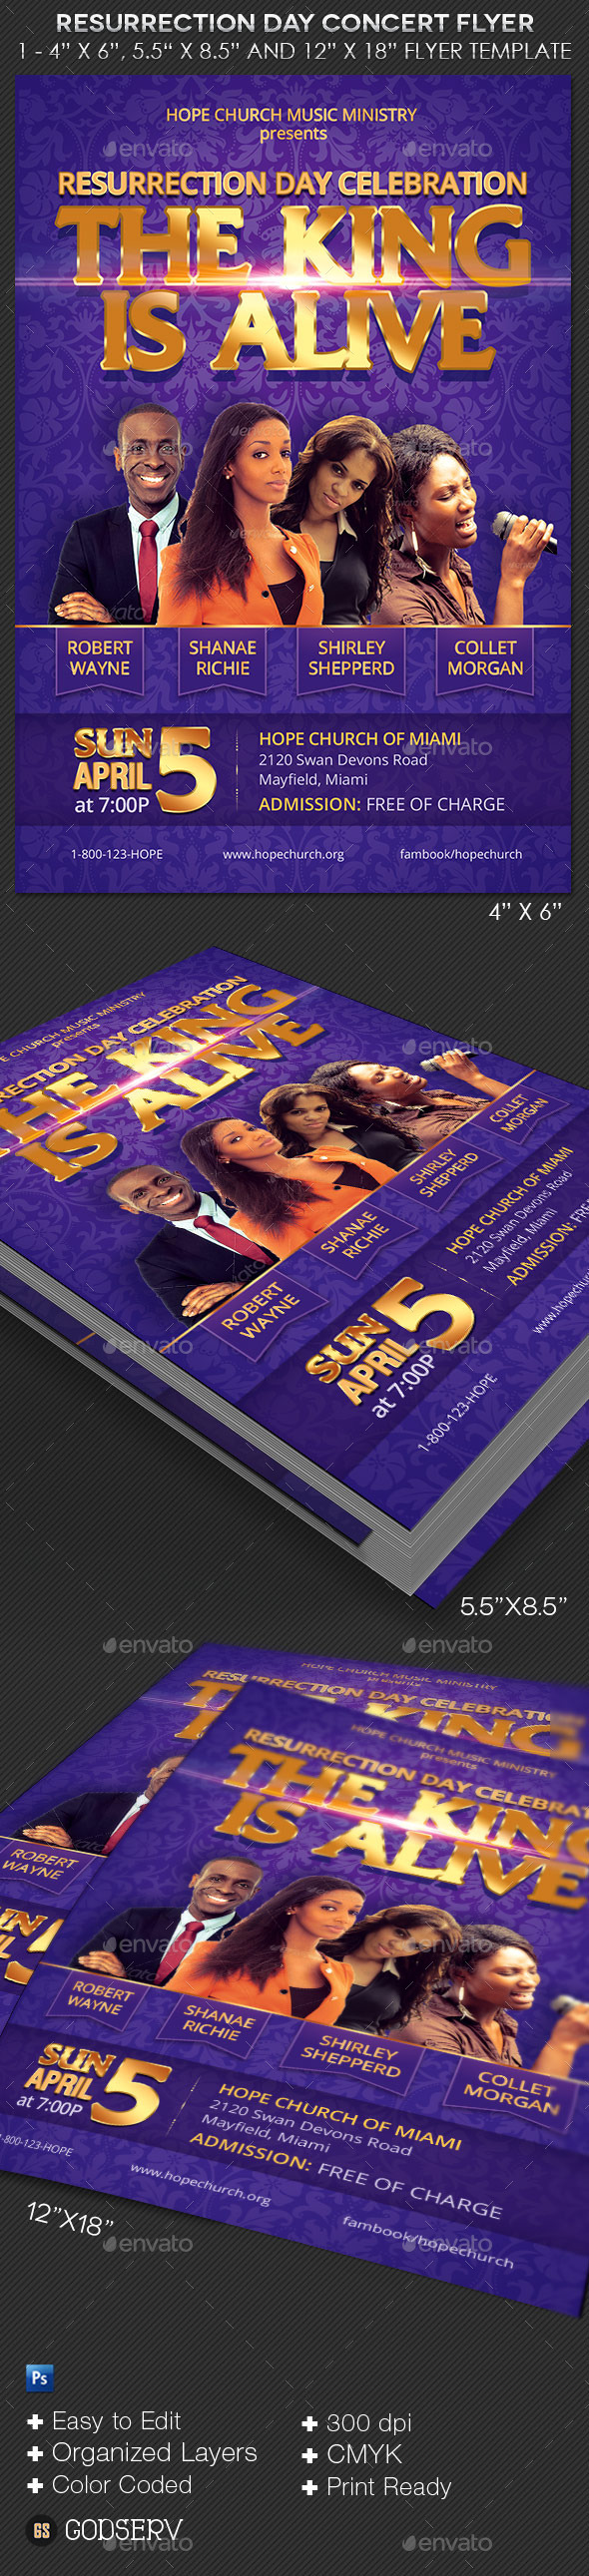 GraphicRiver Resurrection Day Concert Flyer Template 10701935